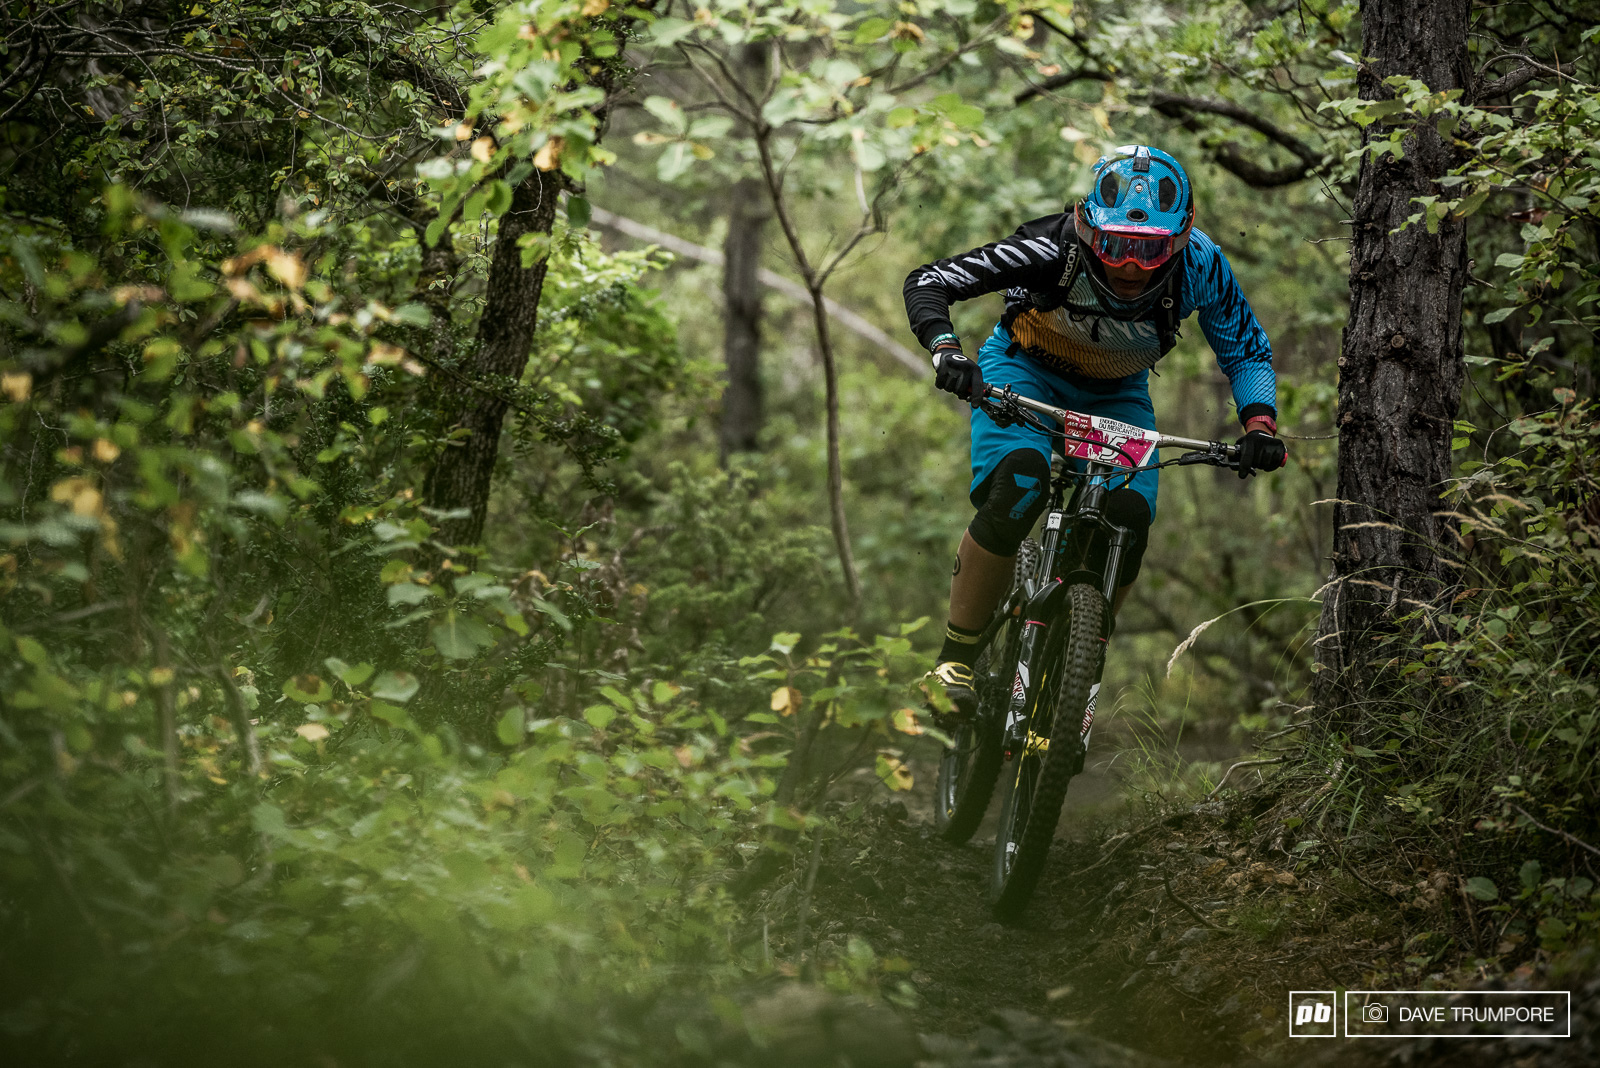 Ines Thoma is currently sitting in 4th but still quite a distant 30 seconds from a podium position.